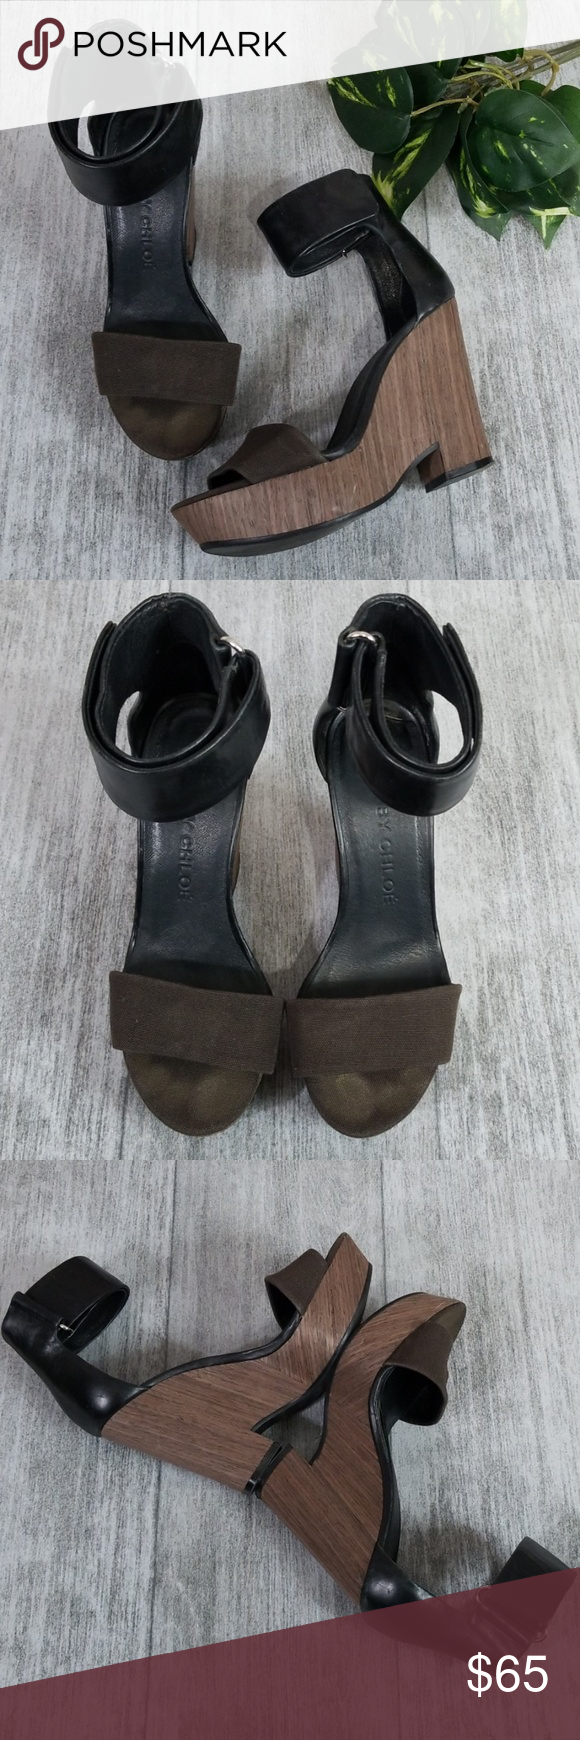 See by Chloe canvas, leather & wood wedges See by Chloe black & brown canvas, leather and wood wedges. Velcro ankle straps.  Size 37. Approximately 4